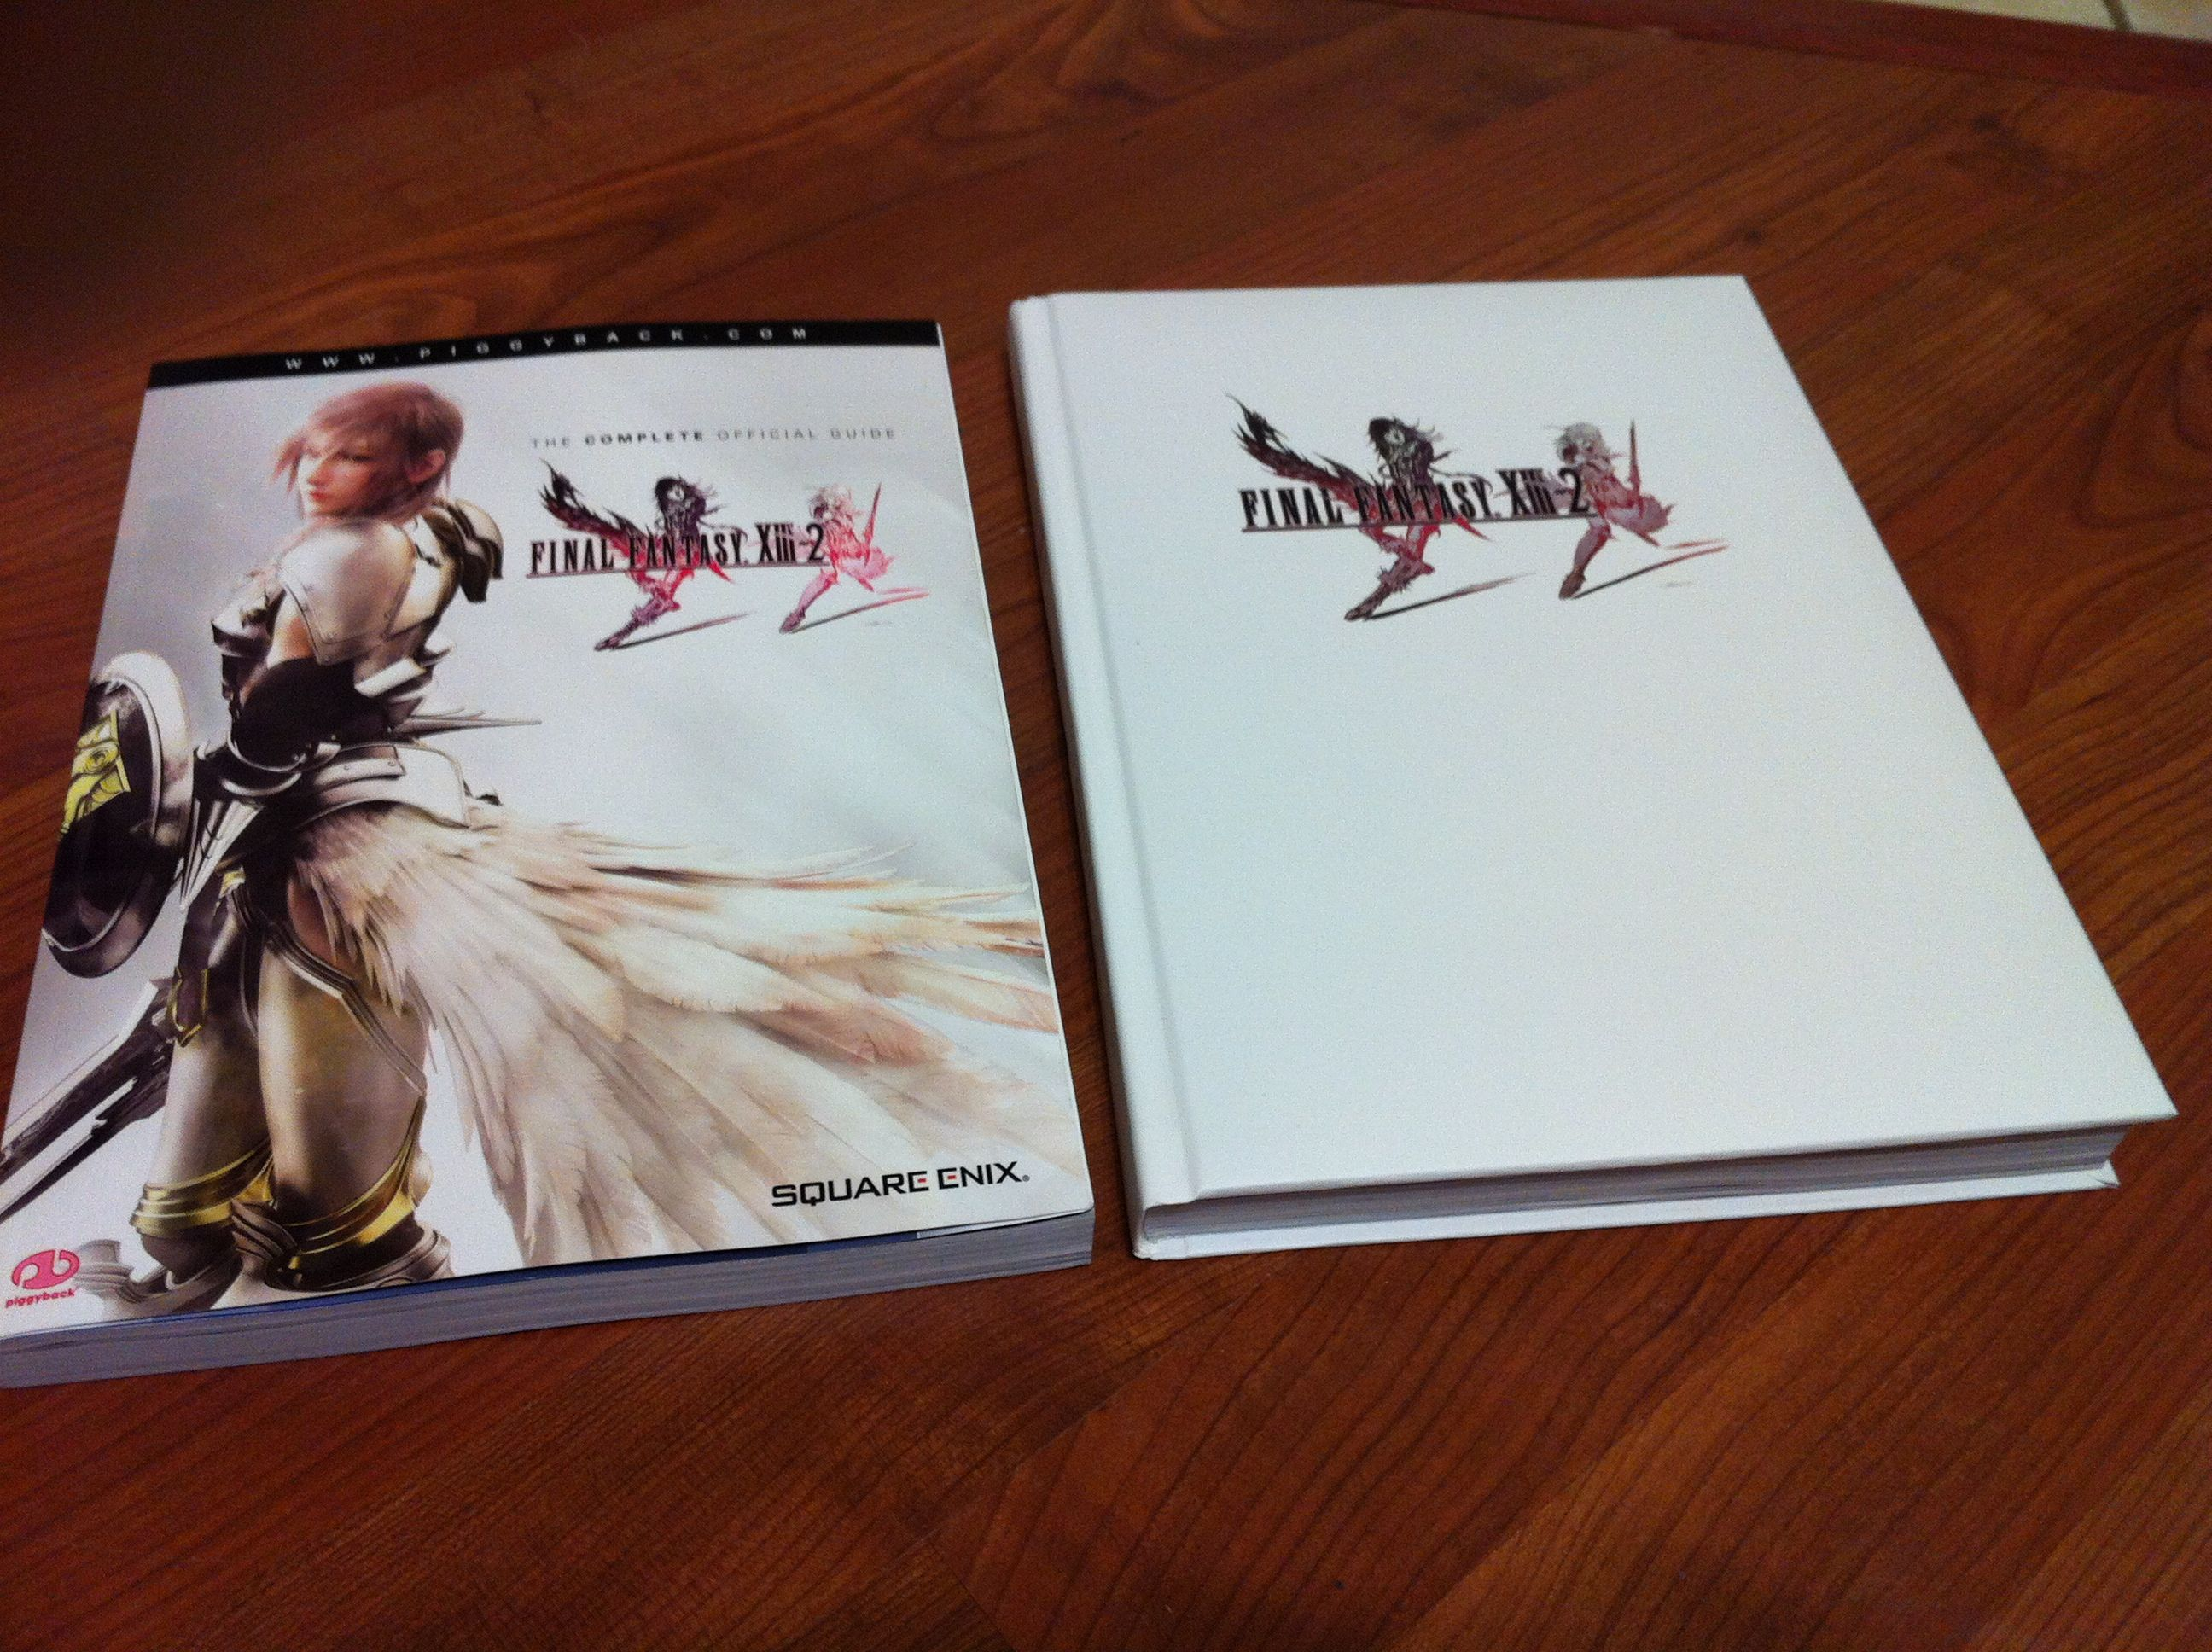 Final fantasy xiii-2 ce strategy guide why should i buy?